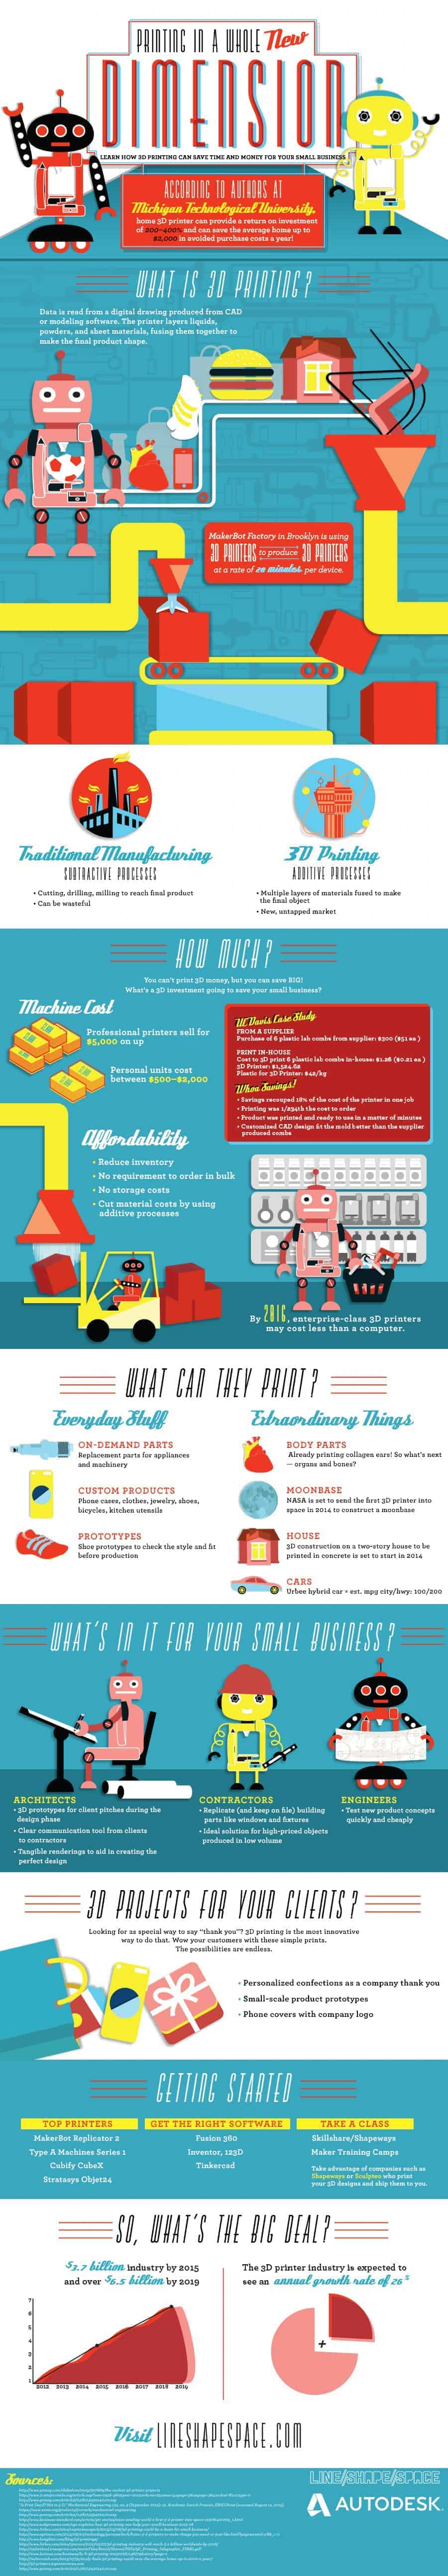 how 3d printing helping small business infographic